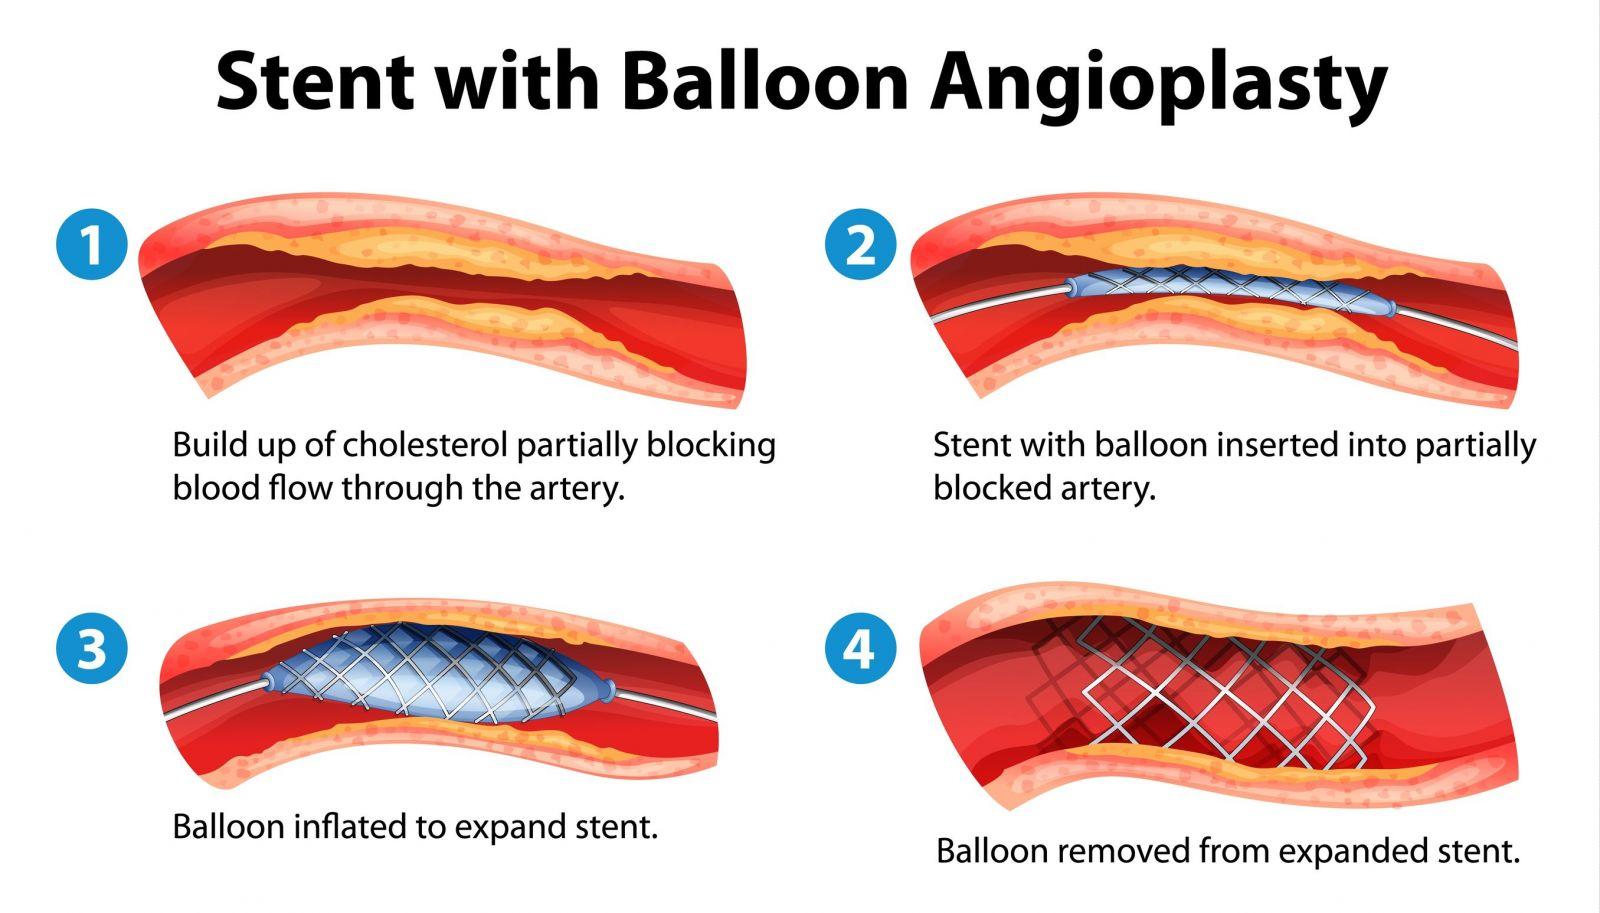 Basic steps in balloon angioplasty with stenting (source)